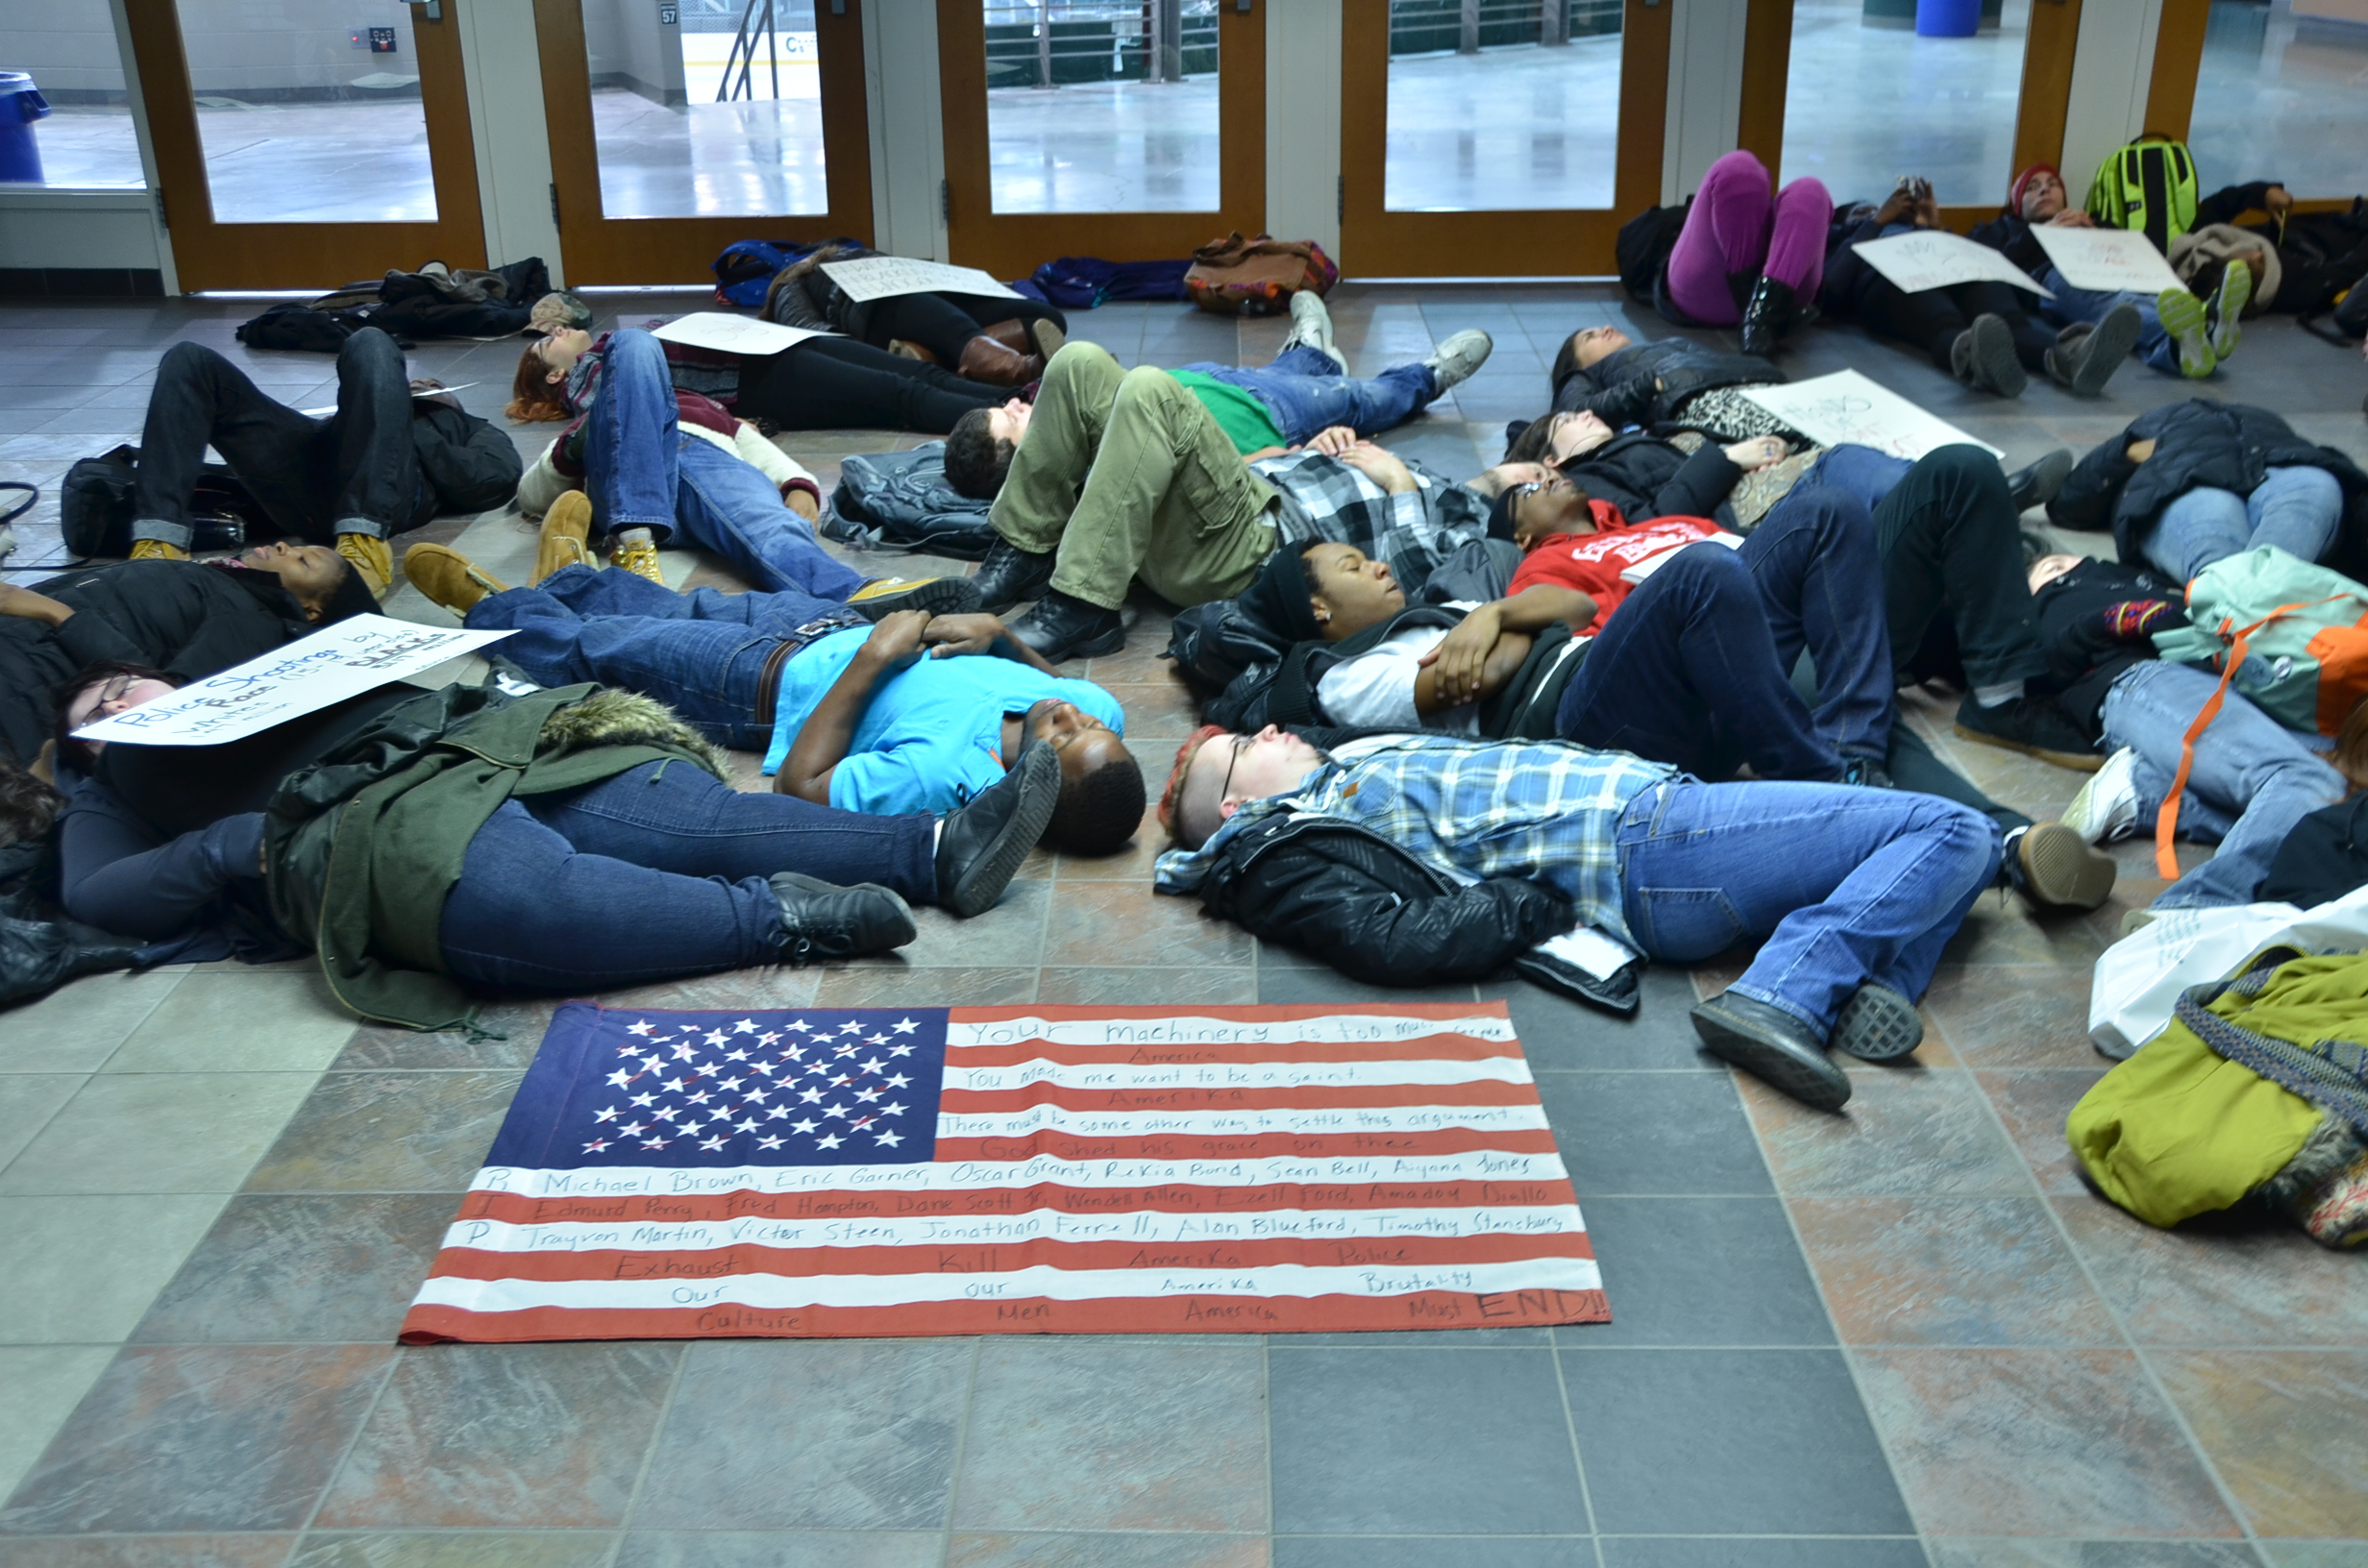 Students lie on the floor of the Marano Campus Center during a protest. (Alain Pierre-Lys | The Oswegonian)